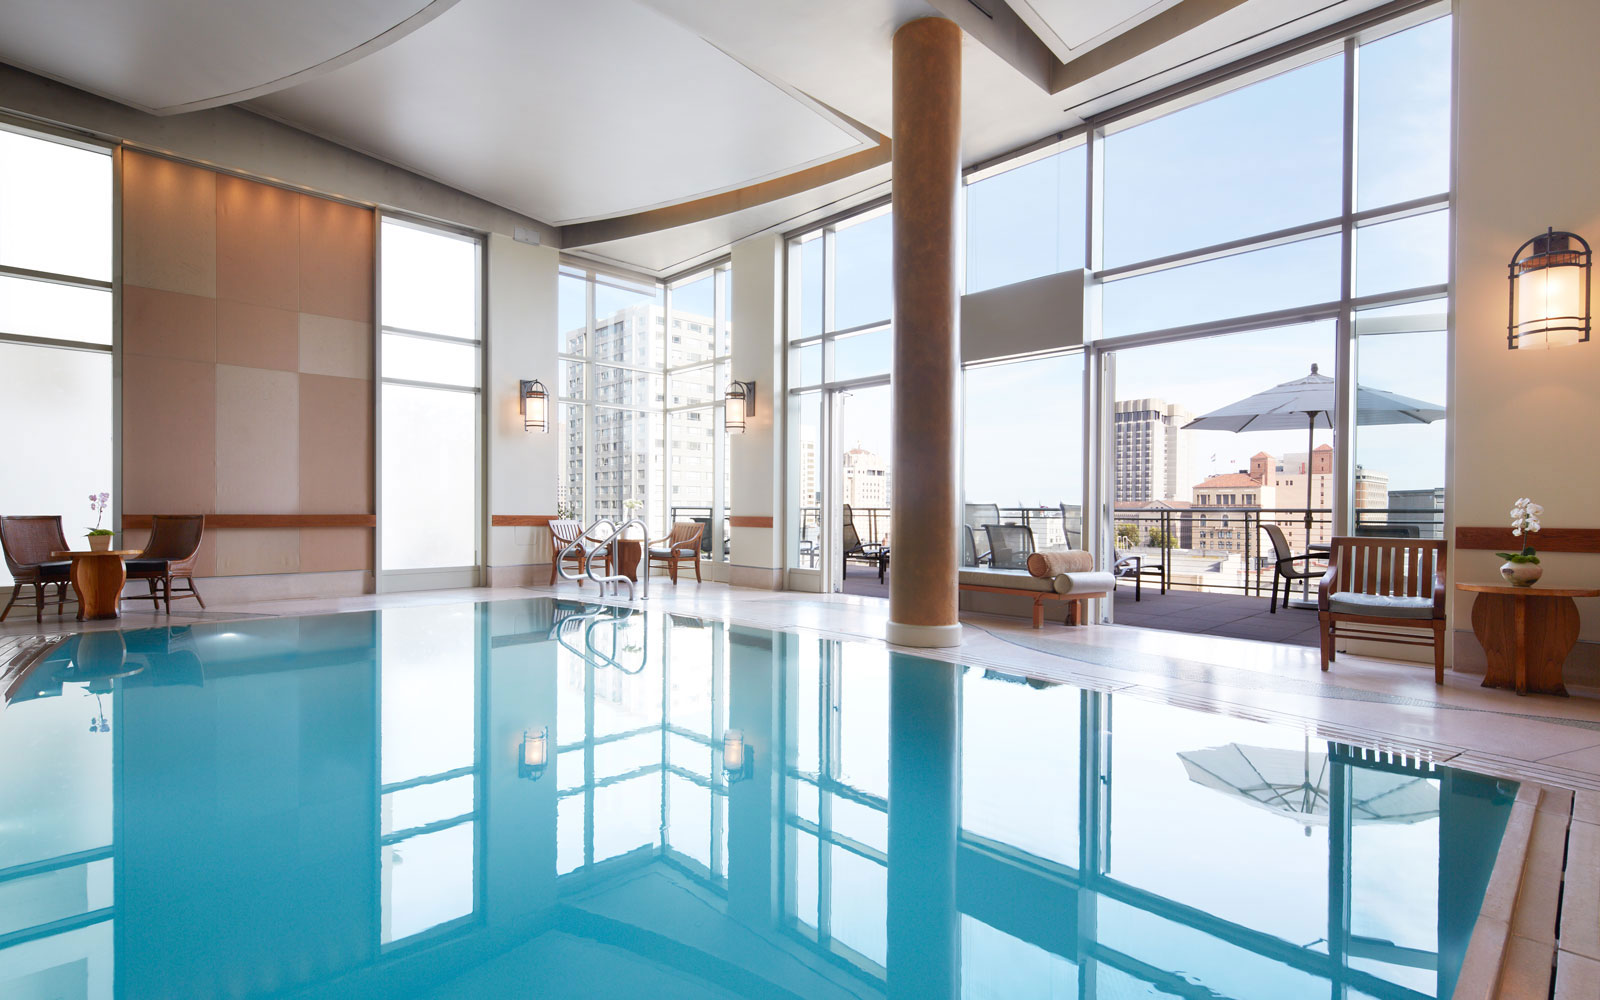 Take a Dip in These Amazing Hotel Pools: No Check-In Required: Scarlet Huntington Hotel, San Francisco